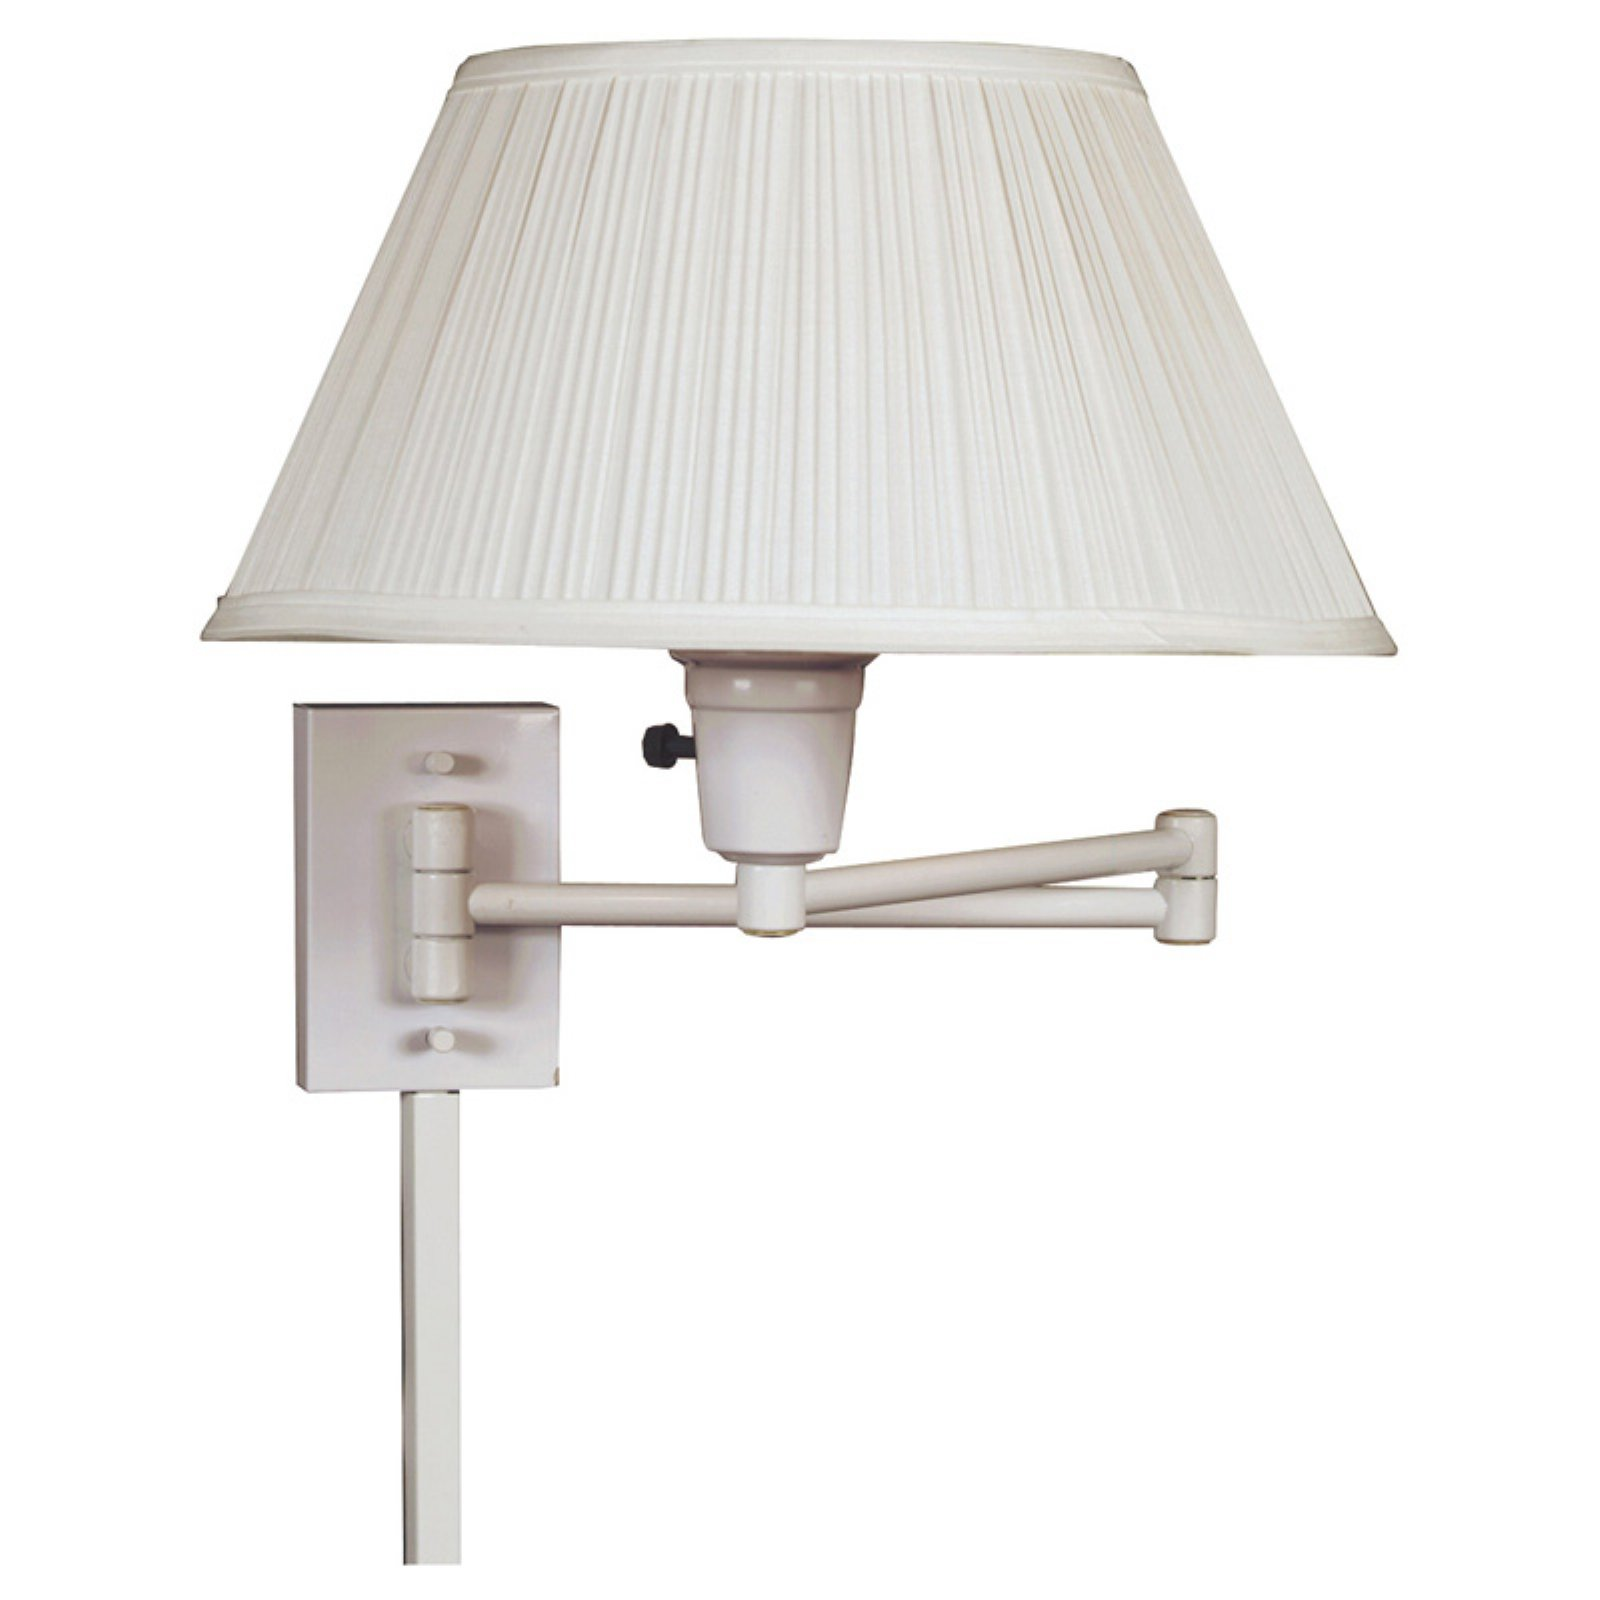 Kenroy Home Simplicity Wall Swing Arm Lamp 16W in. White by Kenroy Home